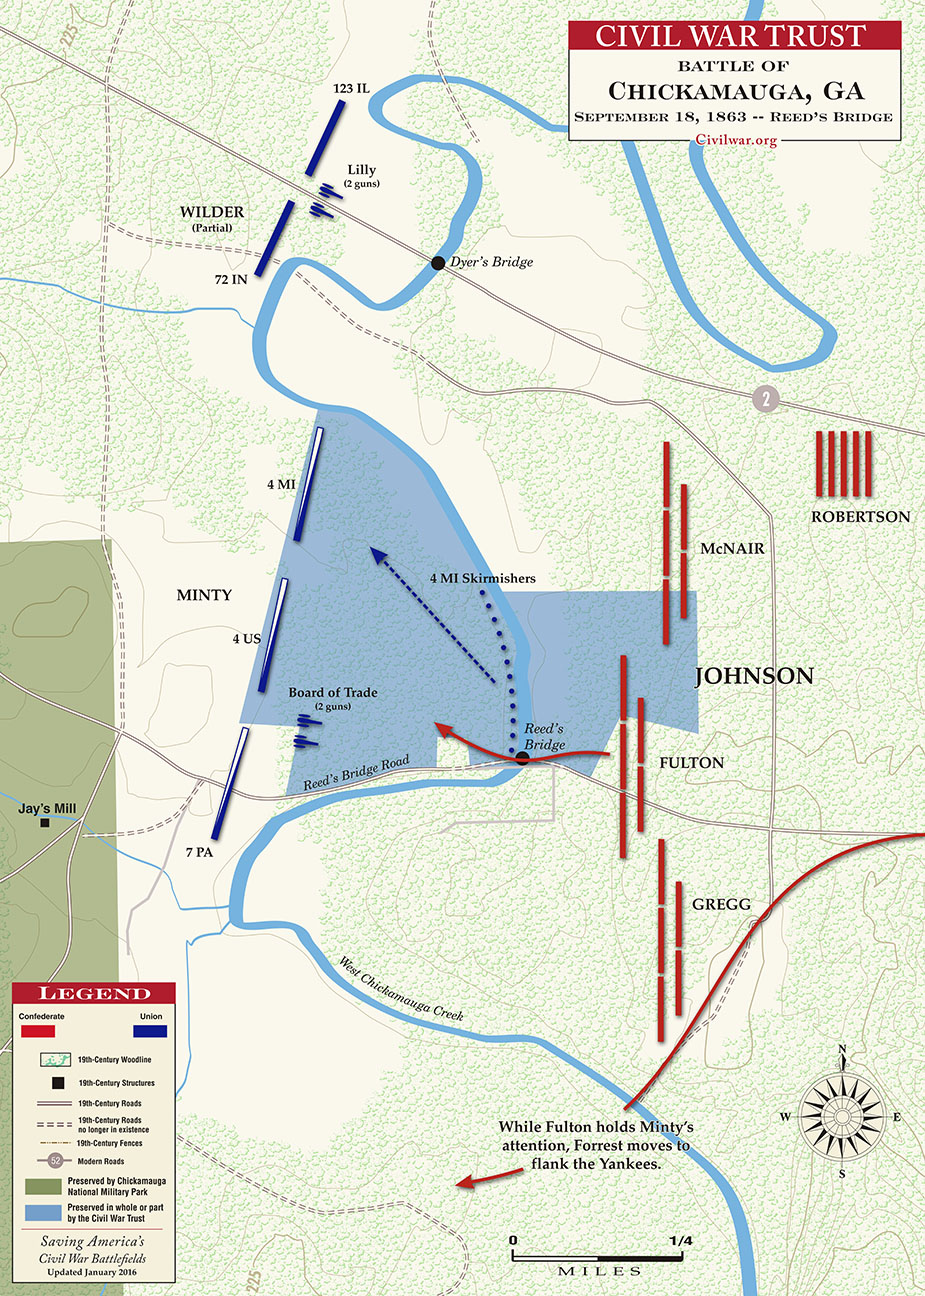 Battle map of the Battle of Chickamauga